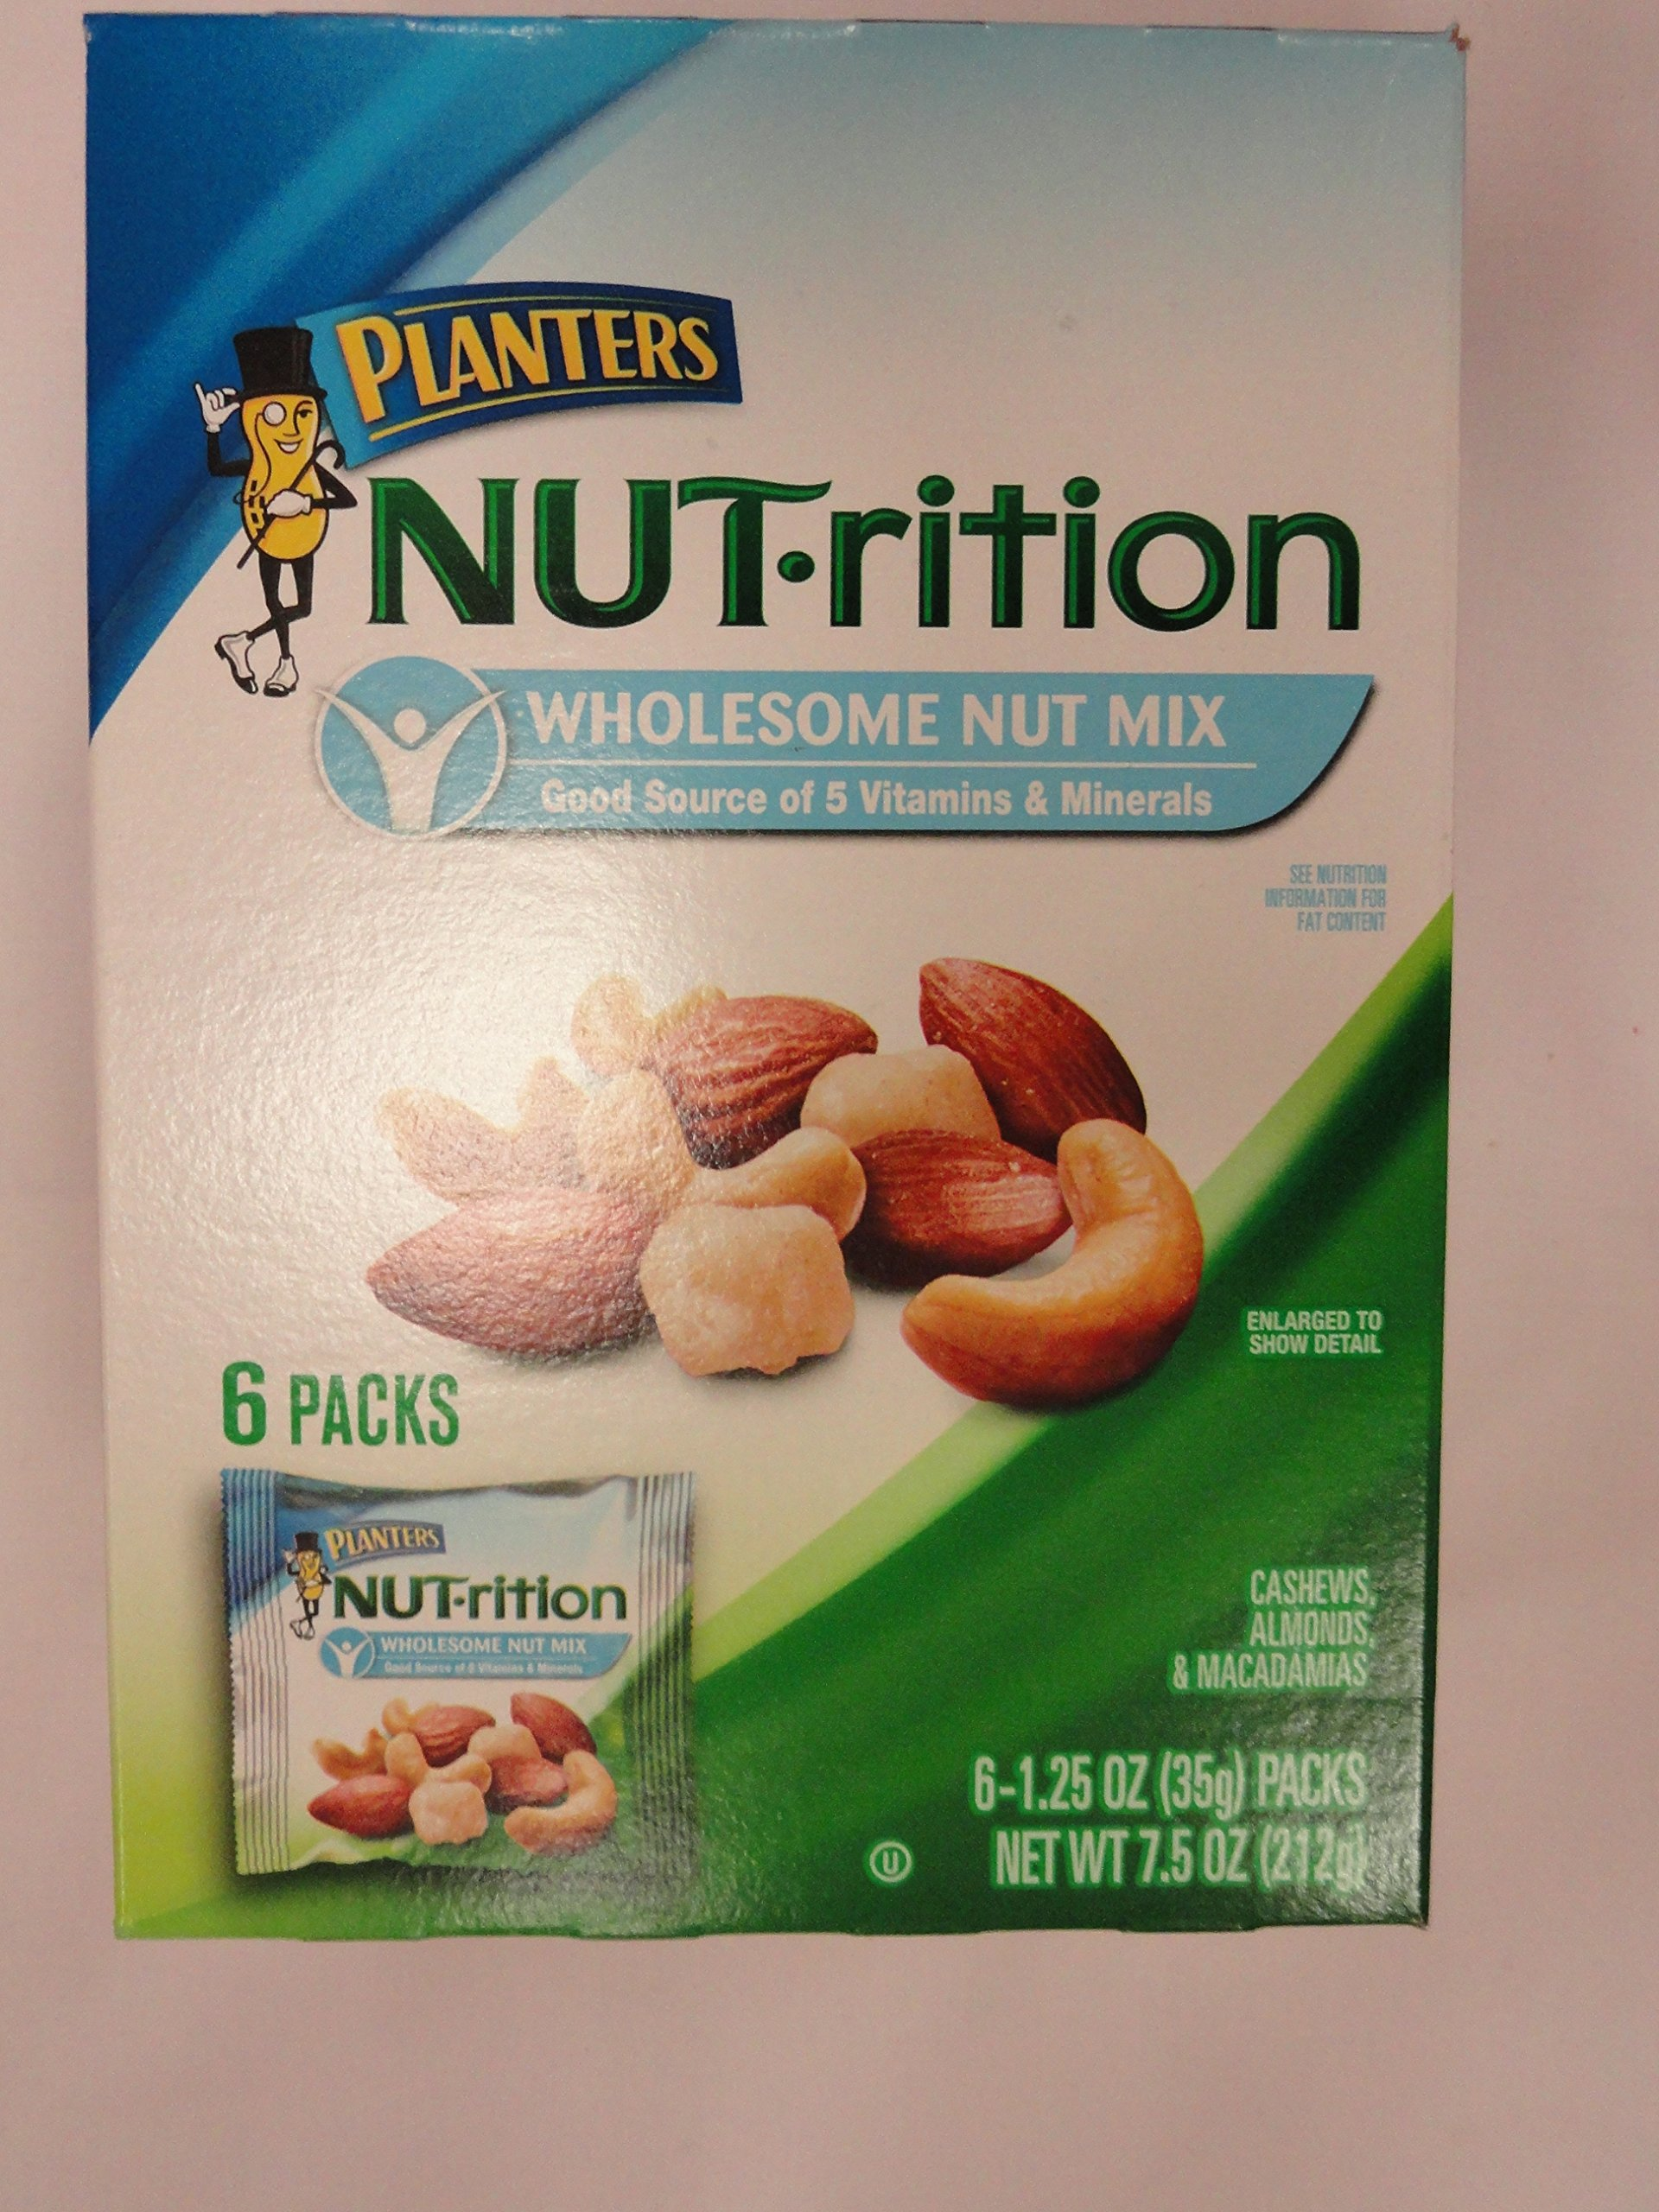 Planters, Nut-rition, Wholesome Nut Mix, 6 Count, 7.5oz Box (Pack of 3)